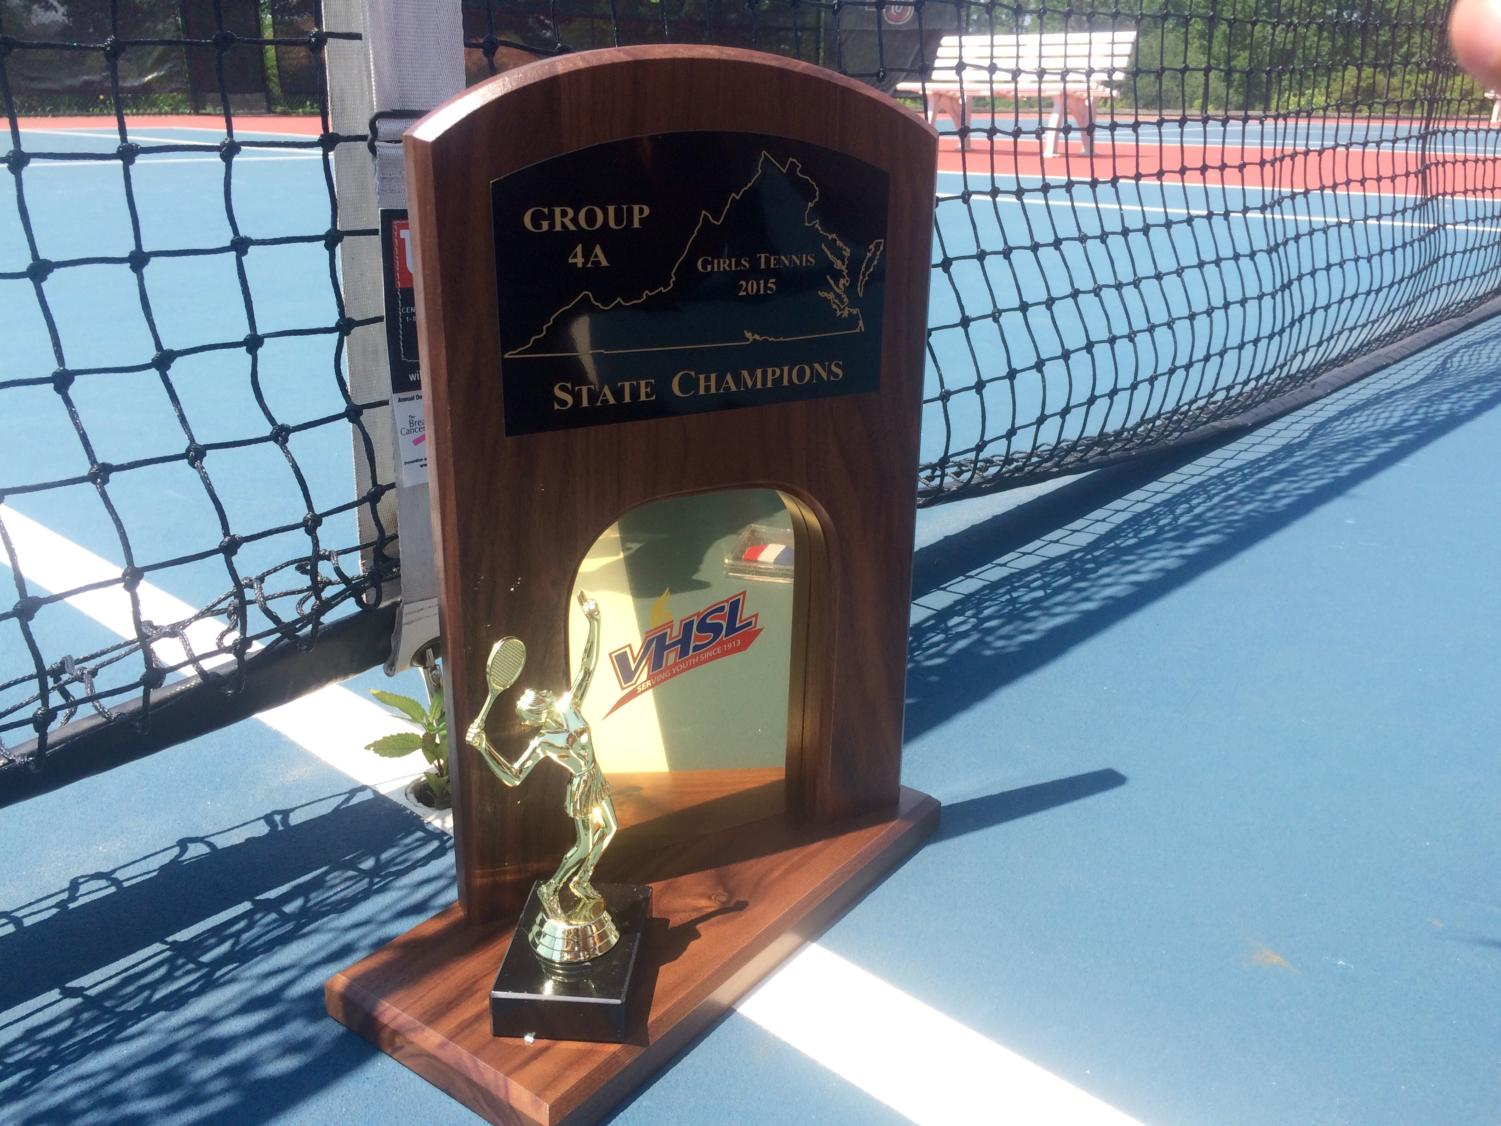 The Midlothian High School Girls Varsity Tennis Team won the state championship 3 years in a row.